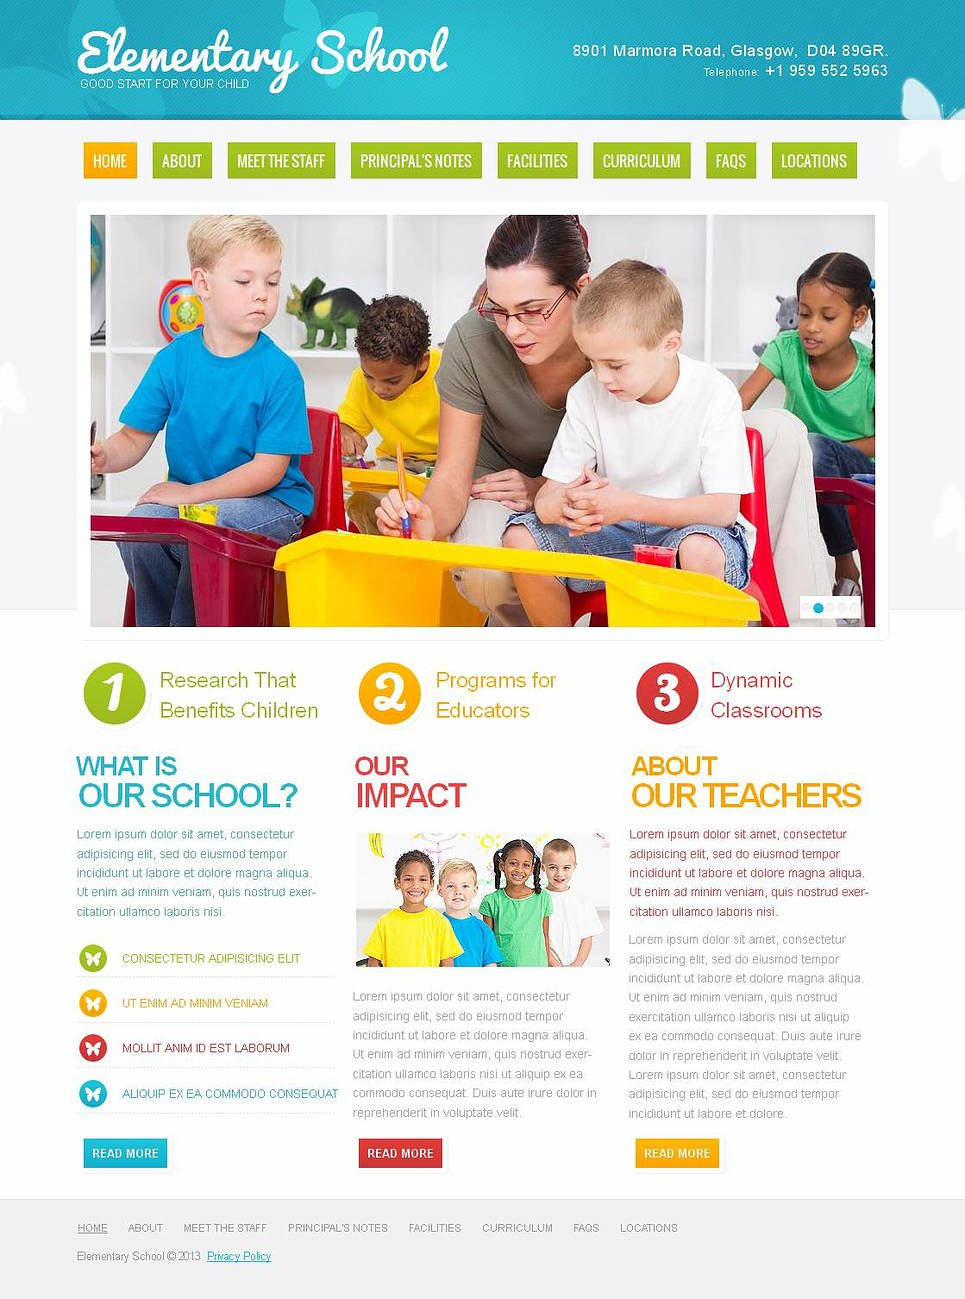 Kids Education Website Template with Eye-catchy Design - image